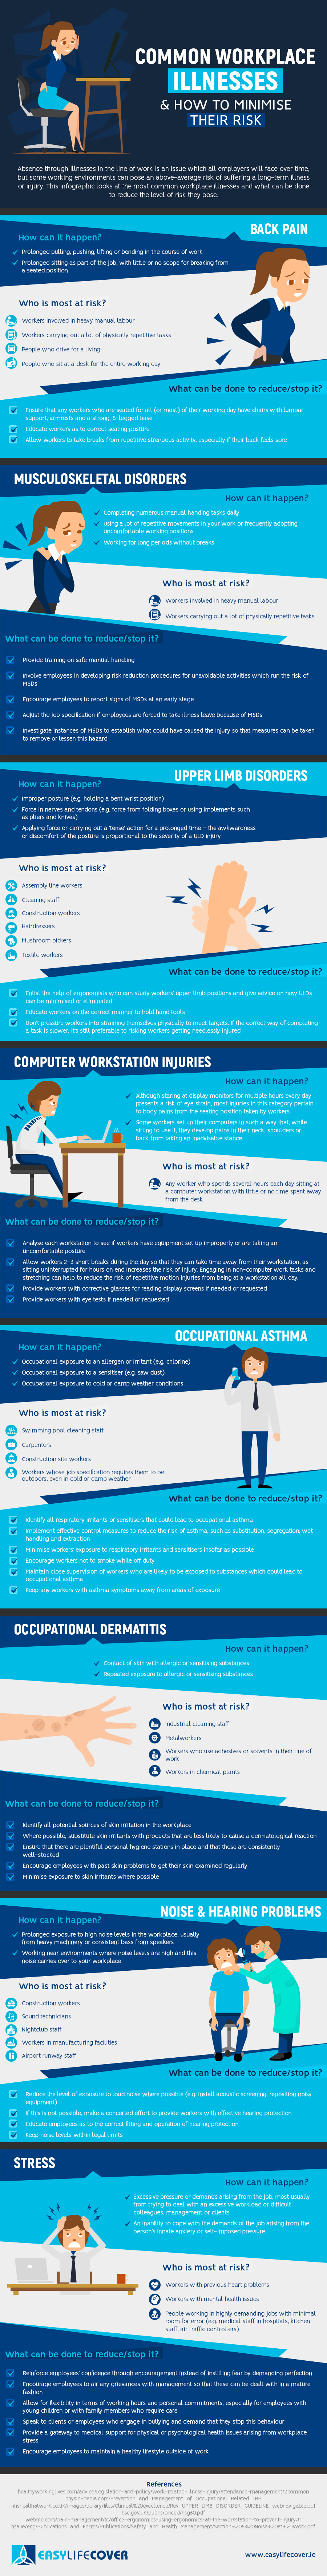 Common Workplace Illnesses & How to Minimise Their Risk Infographic